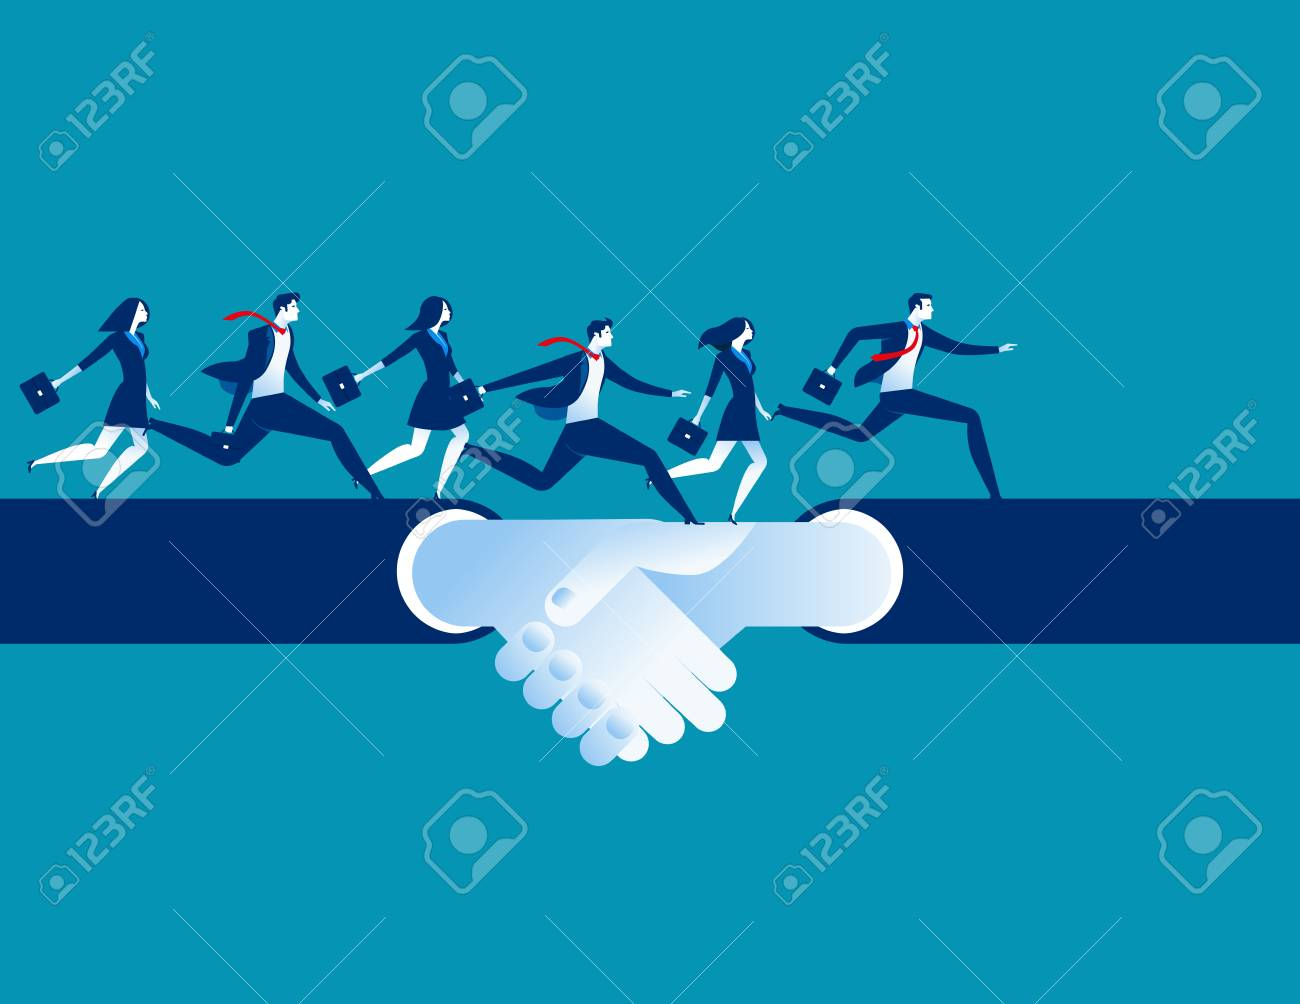 Agreement and hand shake. Business people running on a hand shake. Concept business success illustration. Vector cartoon character. - 84889496